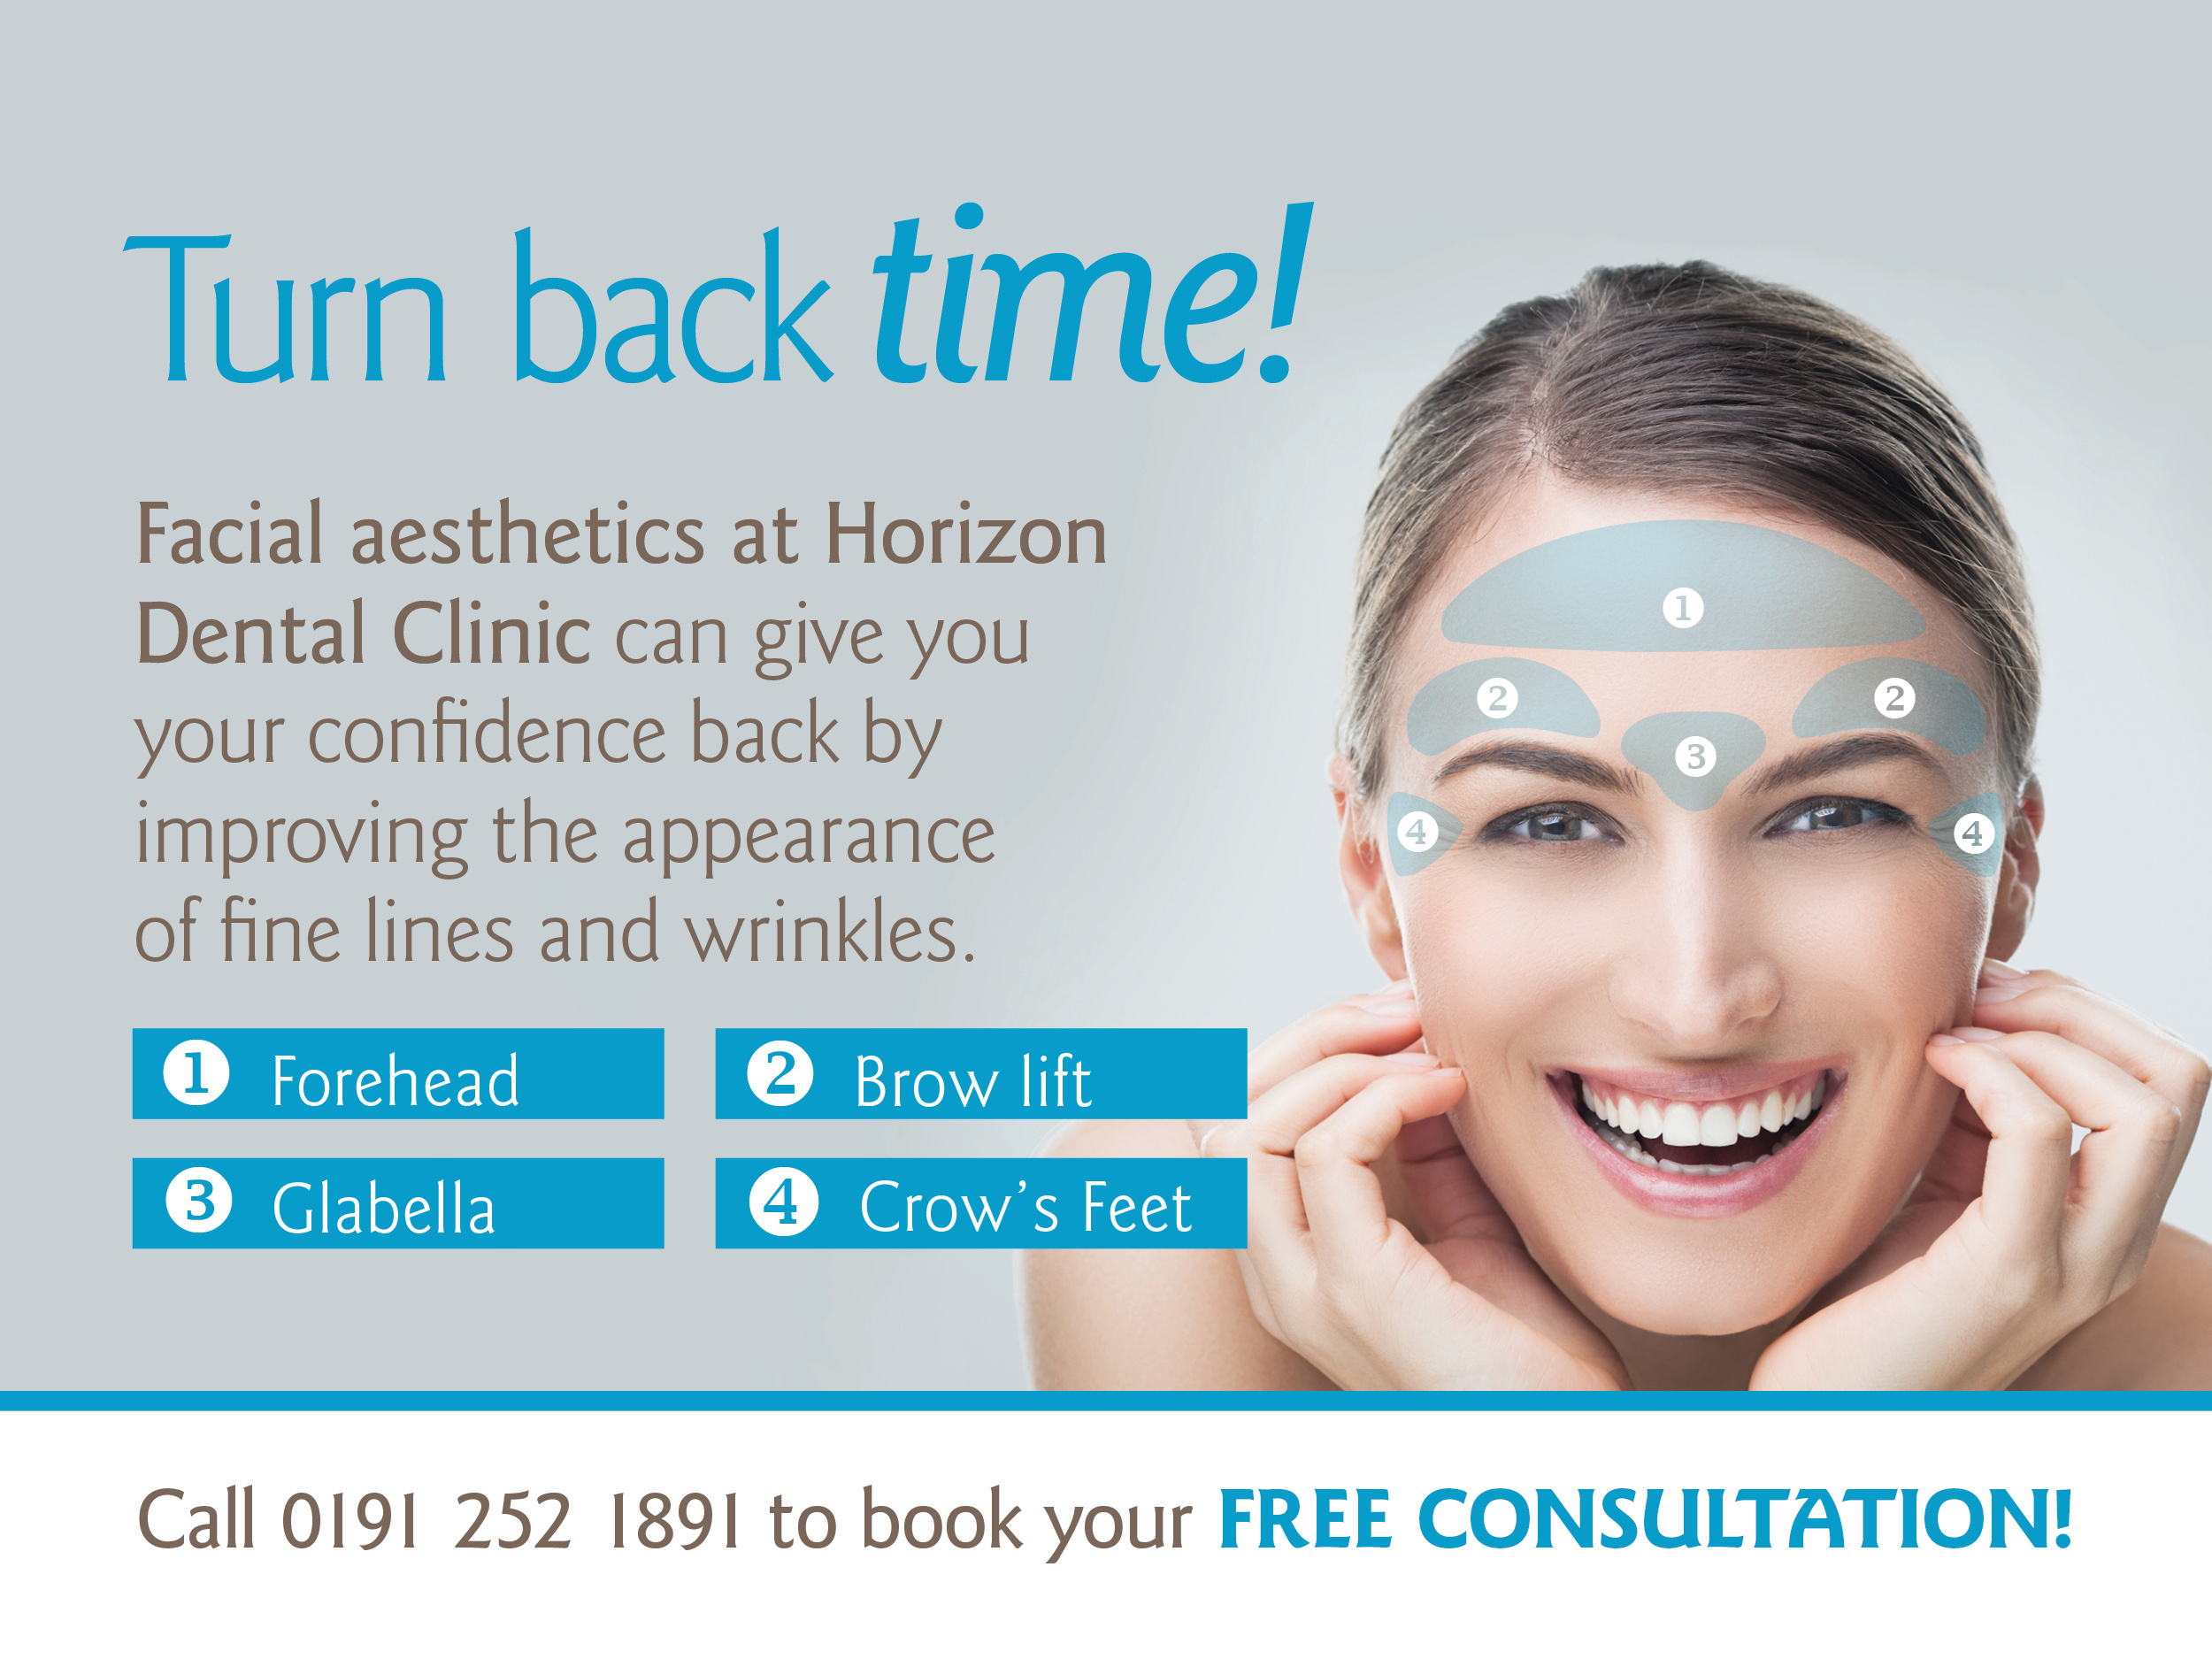 Services | Horizon Dental Group, for all your dental needs in North